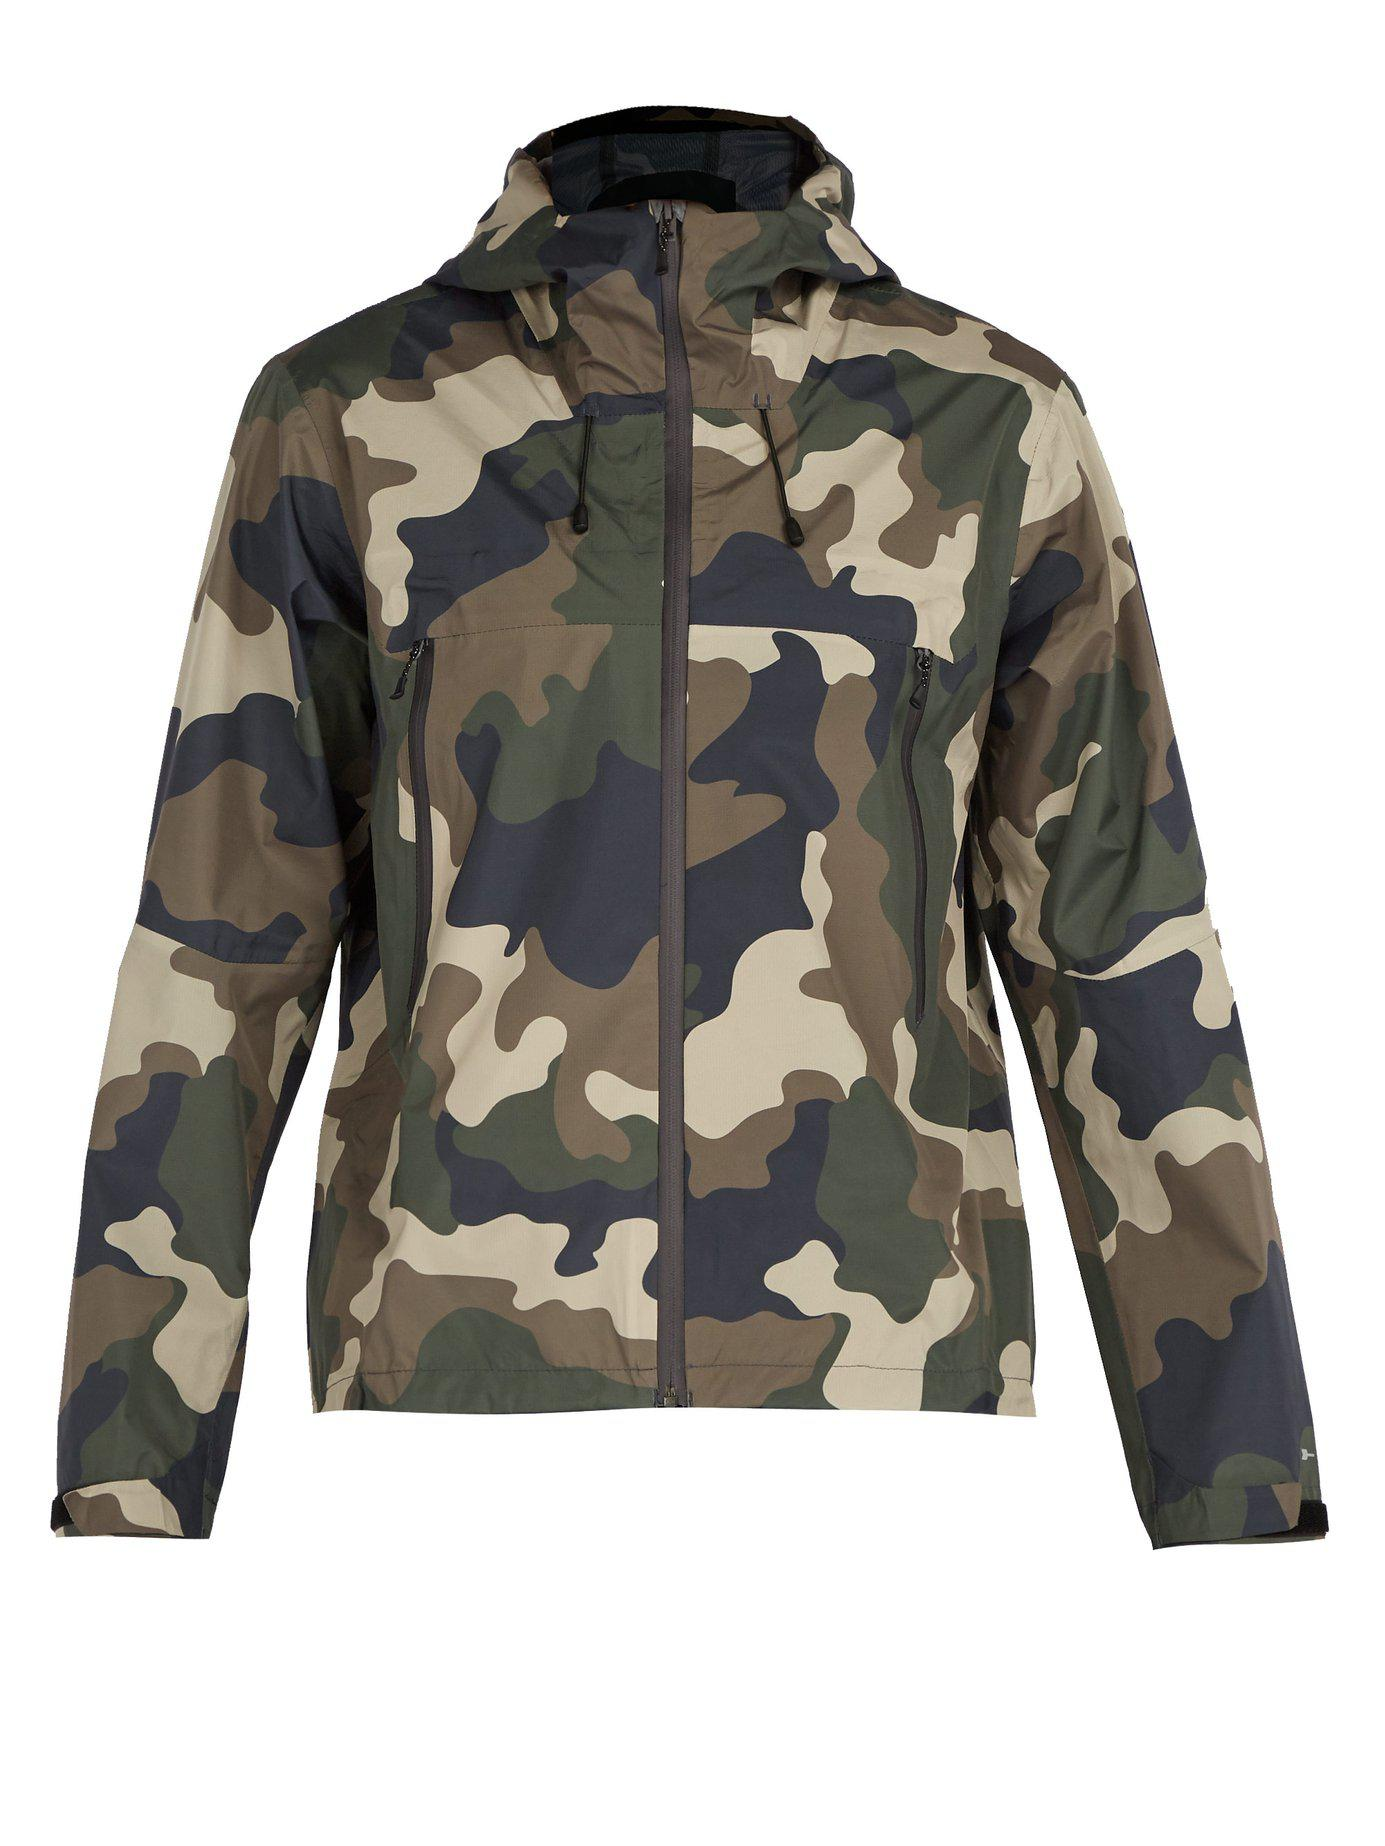 9f922eea49ad Lyst - The Upside All Weather Waterproof Hooded Camo Print Jacket in ...